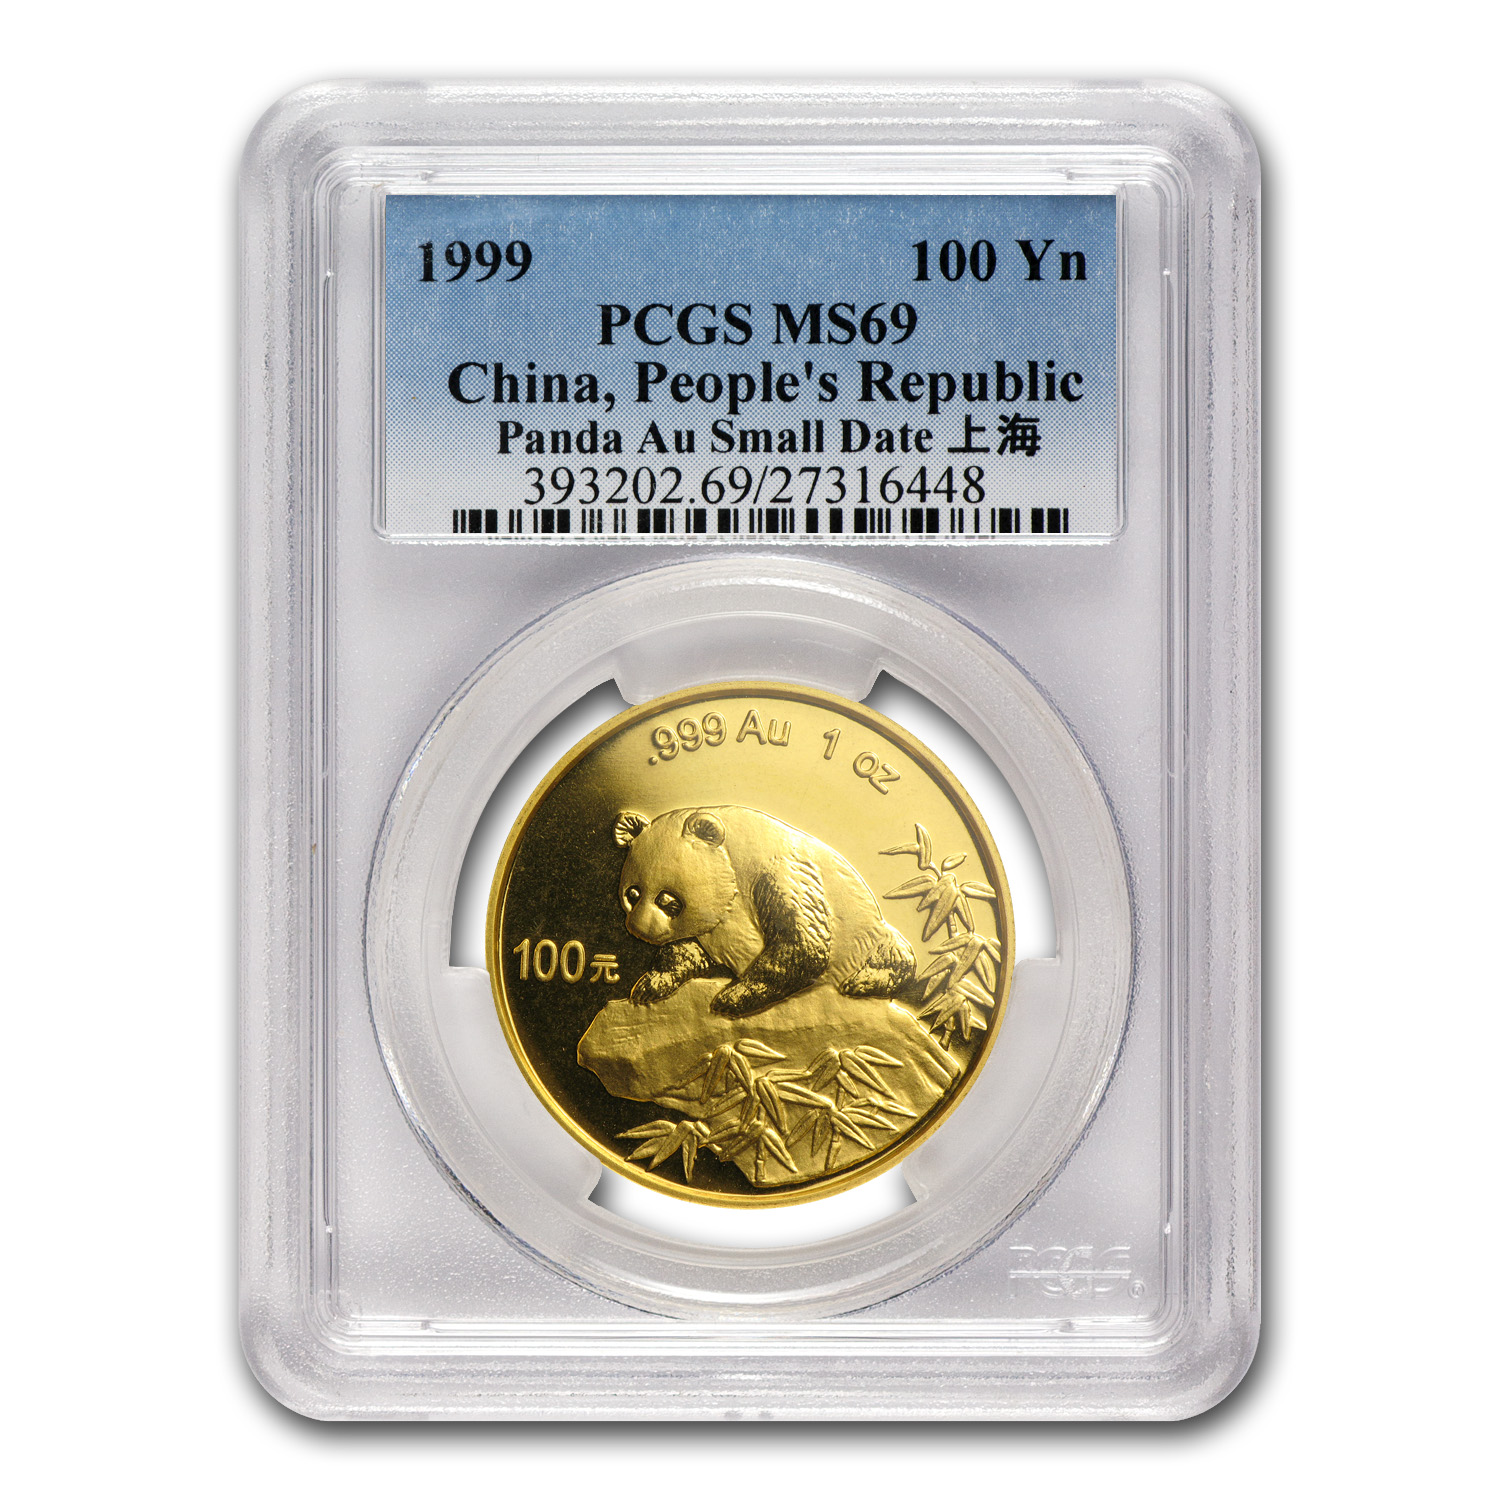 1999 China 1 oz Gold Panda Small Date MS-69 PCGS